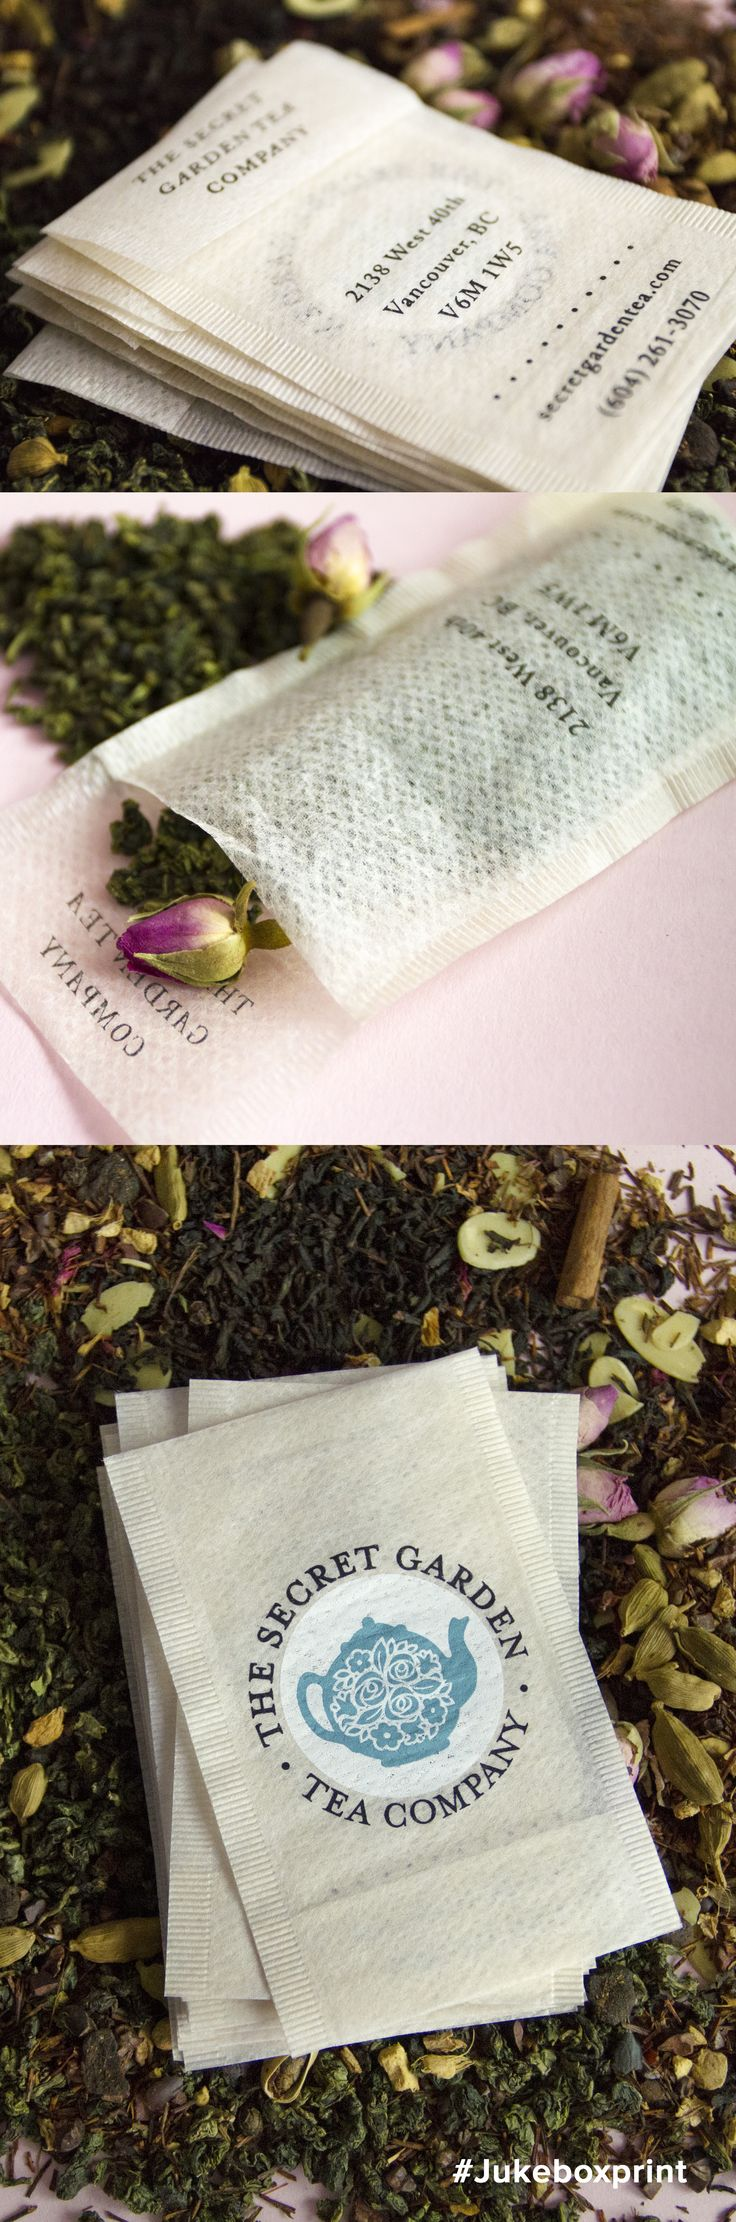 Carefully Handcrafted Business Cards printed on real Tea Bags.   Produced by Jukebox Print.